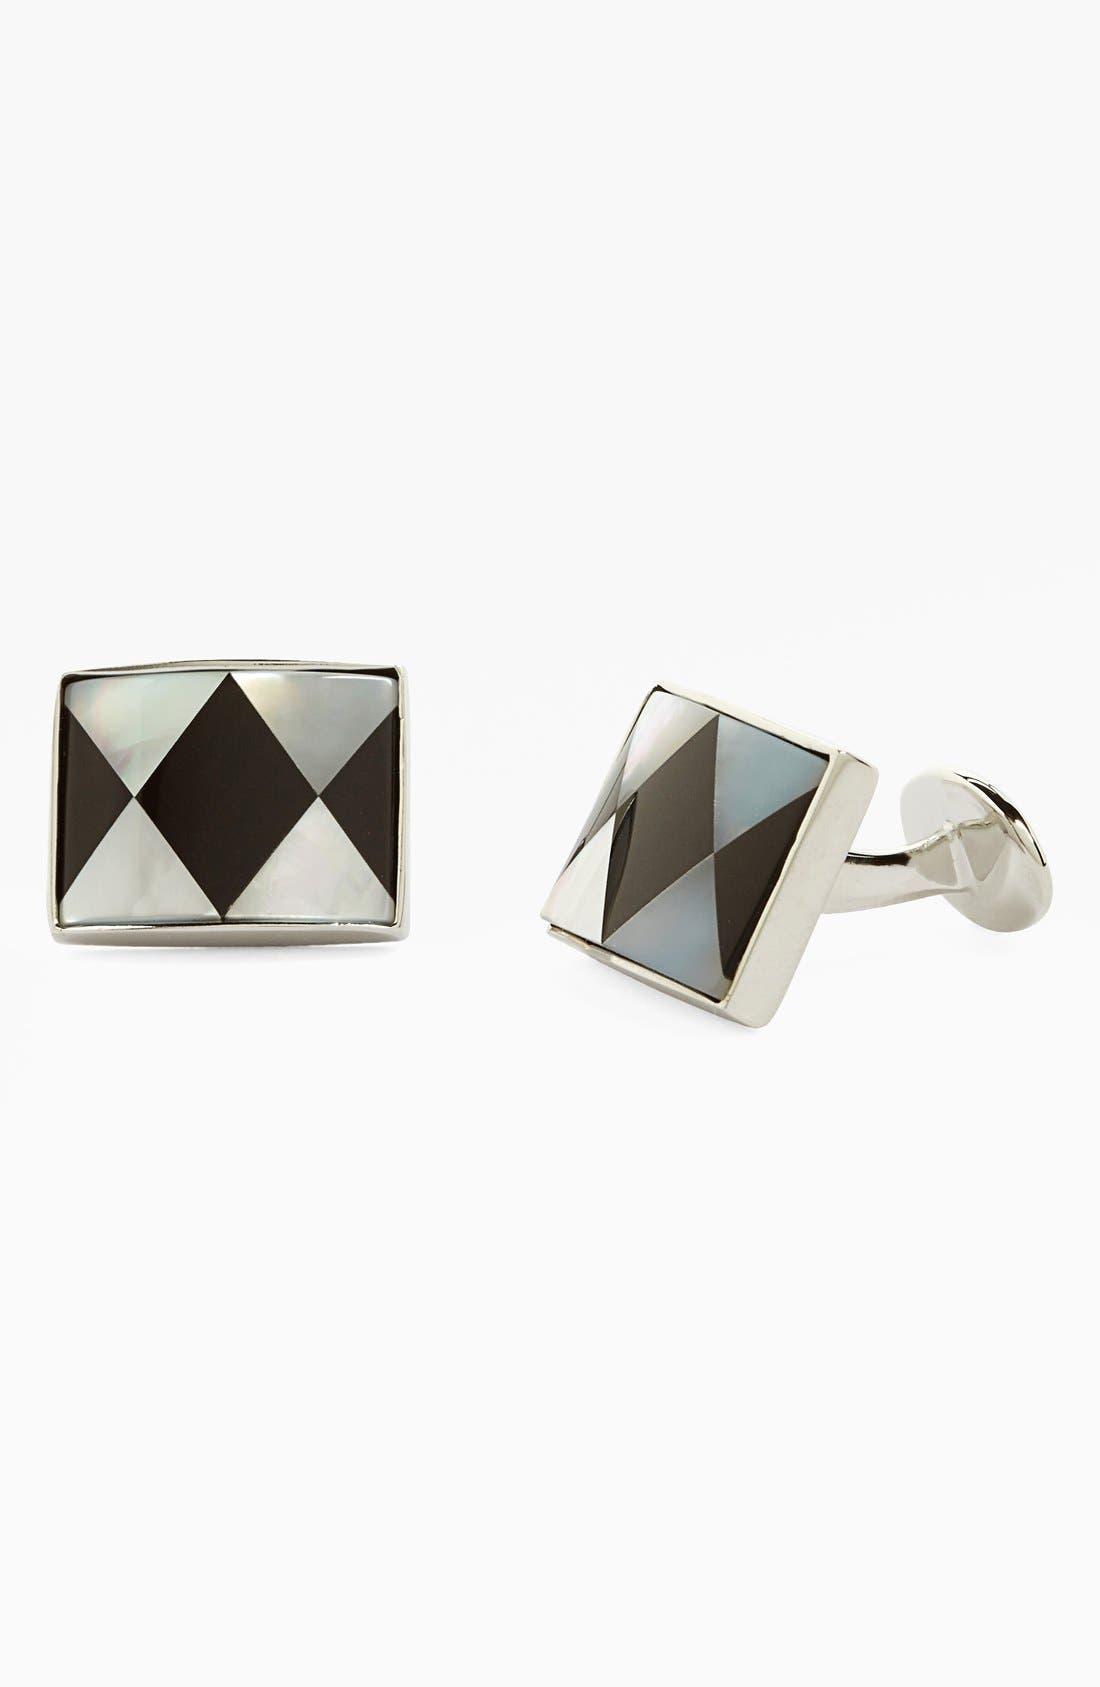 Onyx & Mother of Pearl Cuff Links,                             Main thumbnail 1, color,                             040